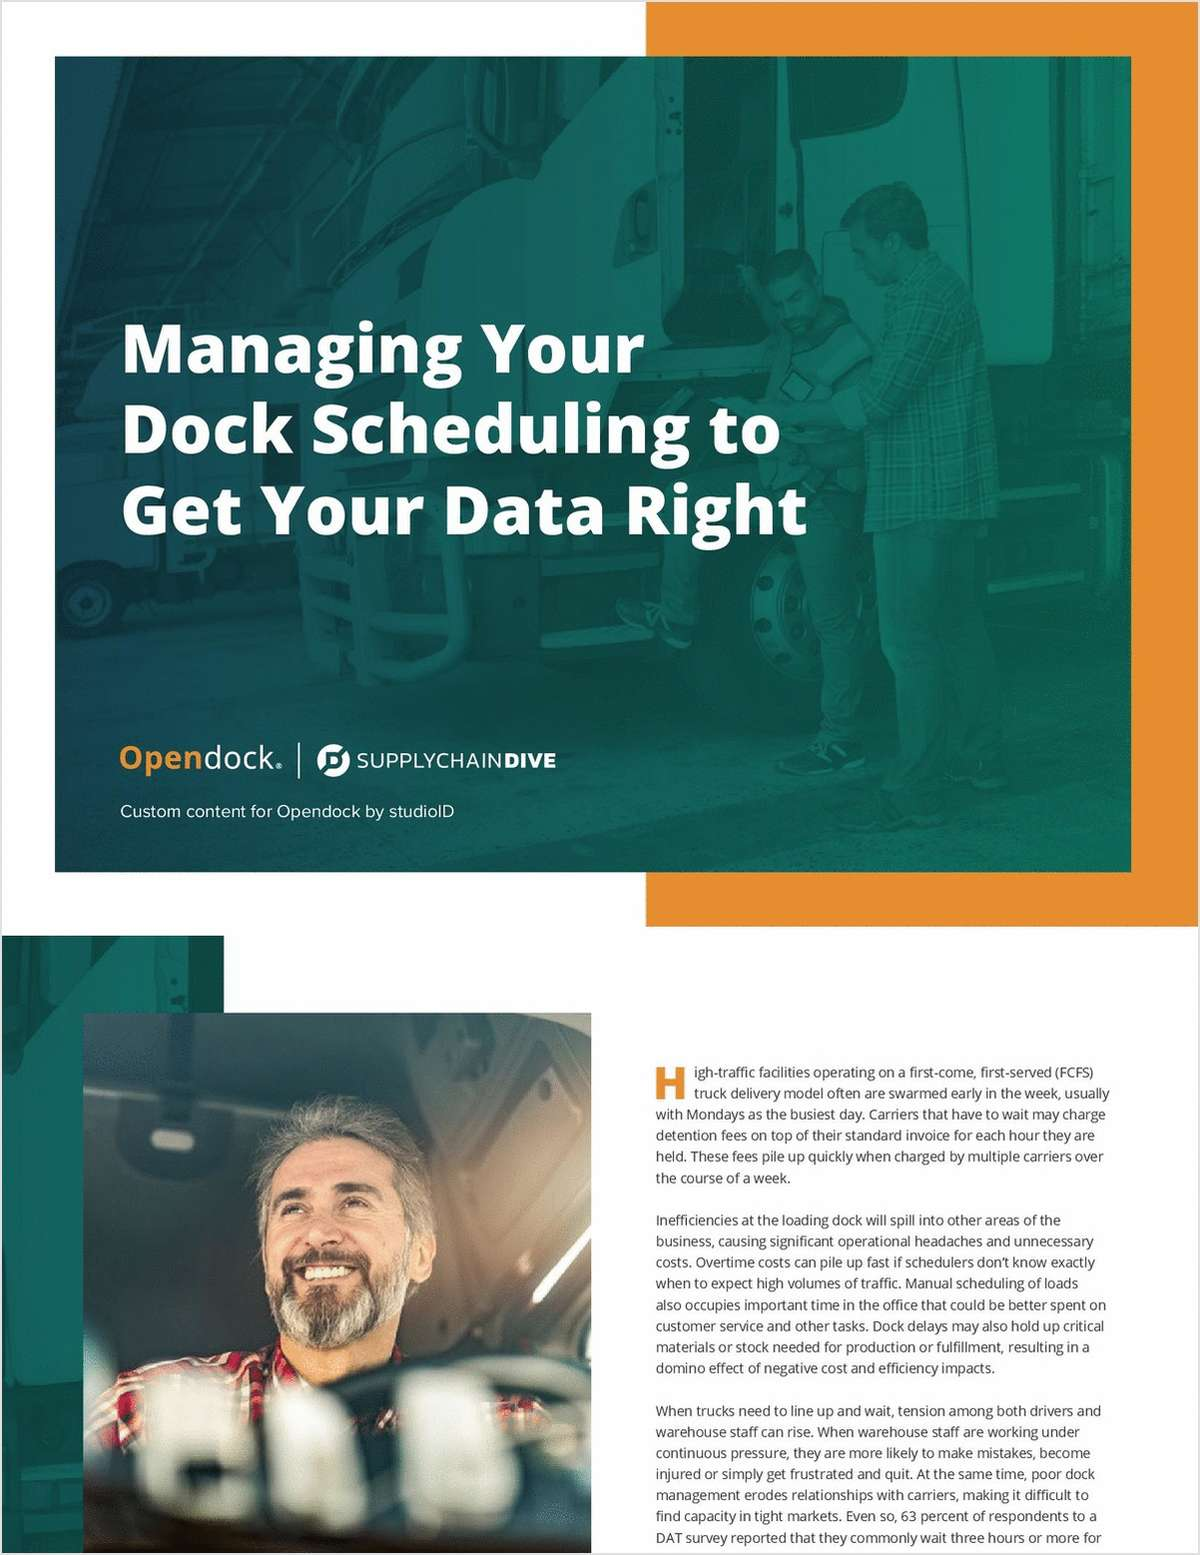 Managing Your Dock Scheduling to Get Your Data Right